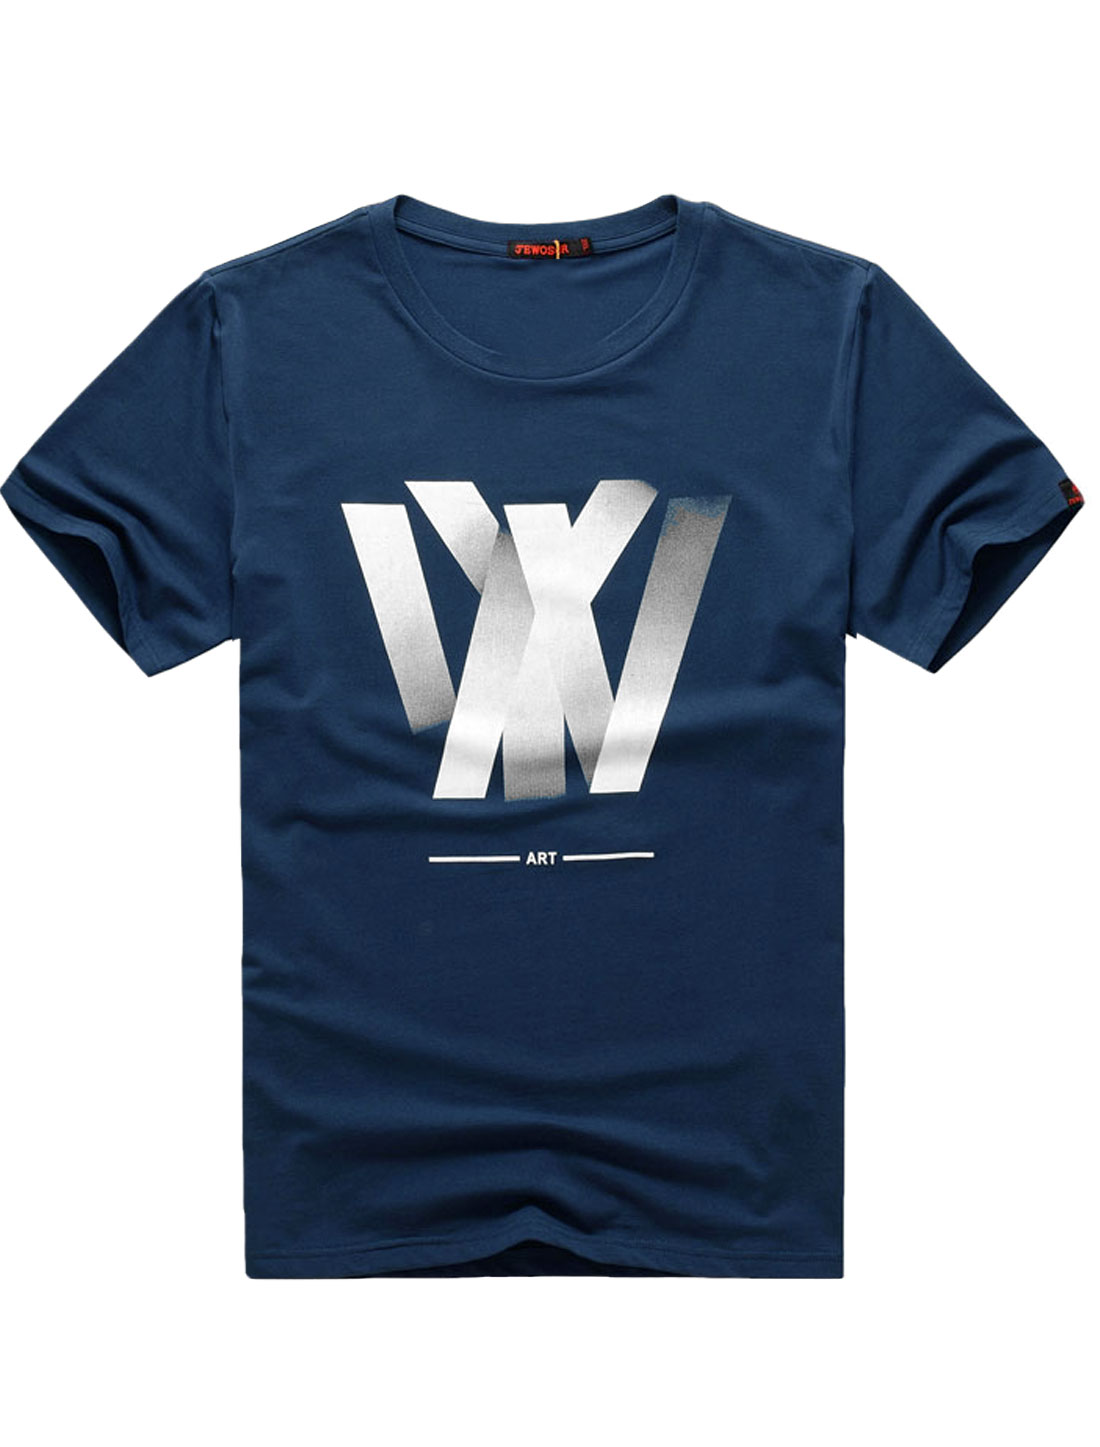 Man Navy Blue Short Sleeves Pullover Round Neck Letters Prints Casual T-Shirt M